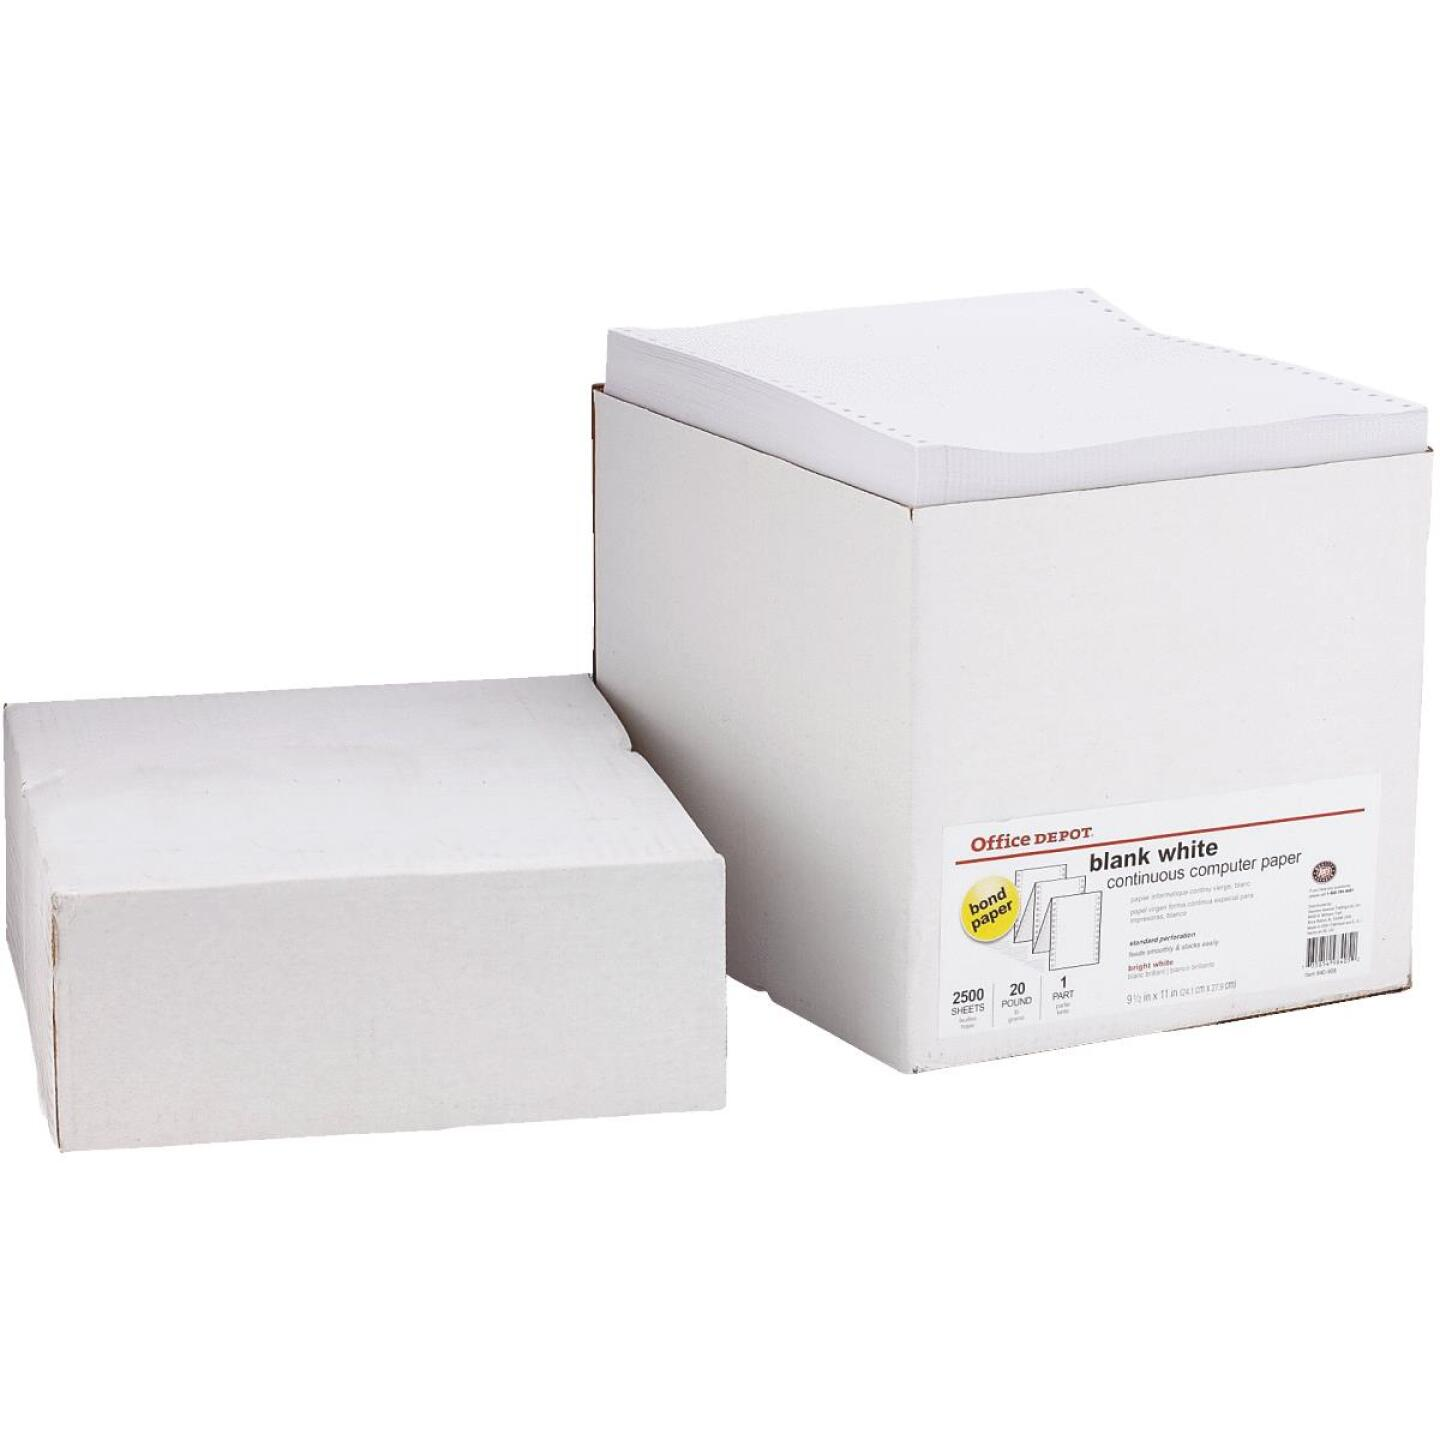 Staples 8-1/2 In. x 11 In. 20 Lb. White Blank Computer Printer Paper, 2500 Sheets Image 2